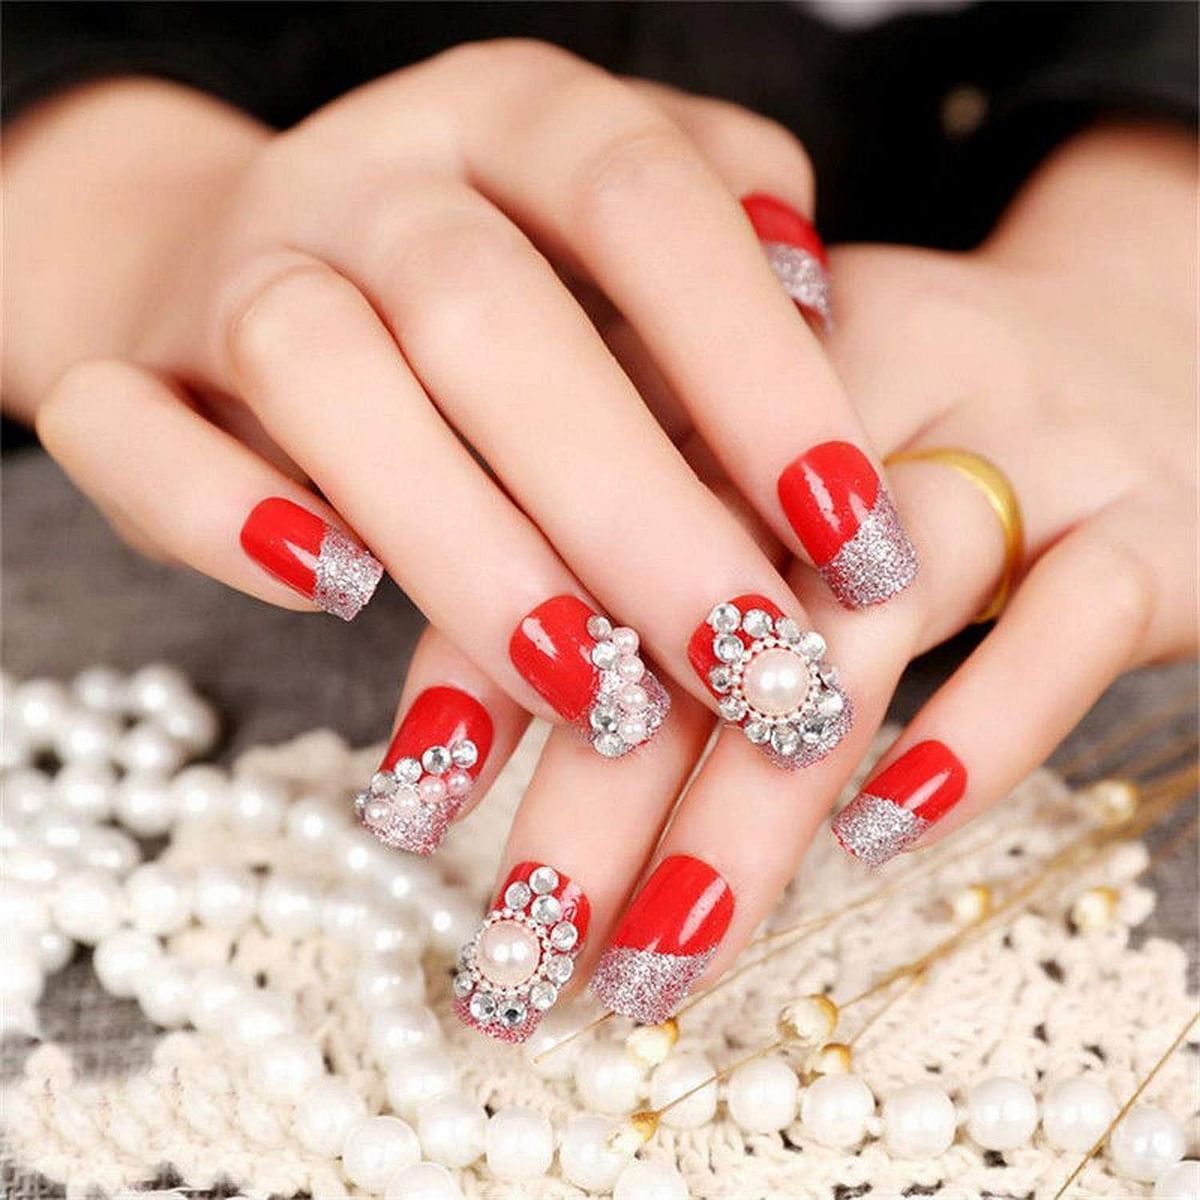 Spruce up your Valentine's Day look with these new nail trends